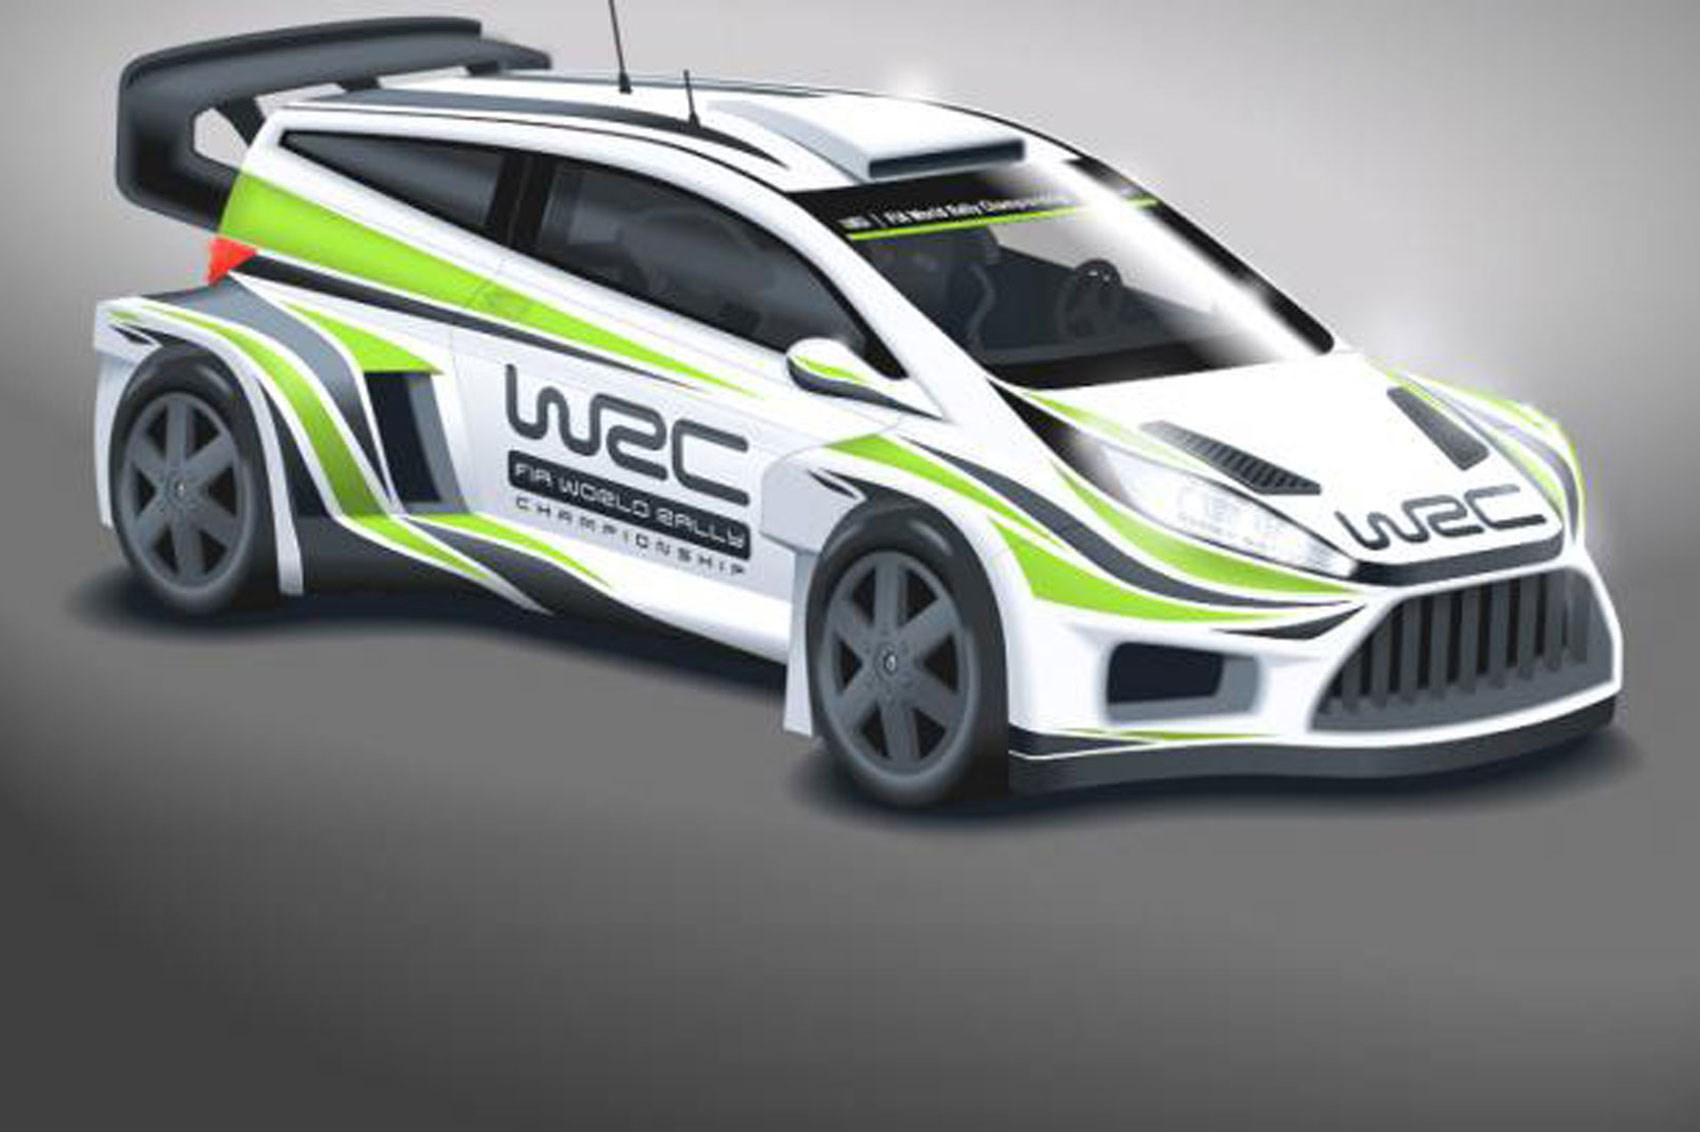 Ultrablogus  Inspiring Wild New Look For Wrc Cars In  By Car Magazine With Glamorous Wrc Cars Will Get Wider Bodies Bigger Wings And More Power For  With Delectable Toyota Hiace Interior Dimensions Also Kia Optima Interior Lights In Addition Premio Interior And Interior Rear View Mirror Replacement As Well As Toyota Frs Interior Additionally Z Interior Lights From Carmagazinecouk With Ultrablogus  Glamorous Wild New Look For Wrc Cars In  By Car Magazine With Delectable Wrc Cars Will Get Wider Bodies Bigger Wings And More Power For  And Inspiring Toyota Hiace Interior Dimensions Also Kia Optima Interior Lights In Addition Premio Interior From Carmagazinecouk